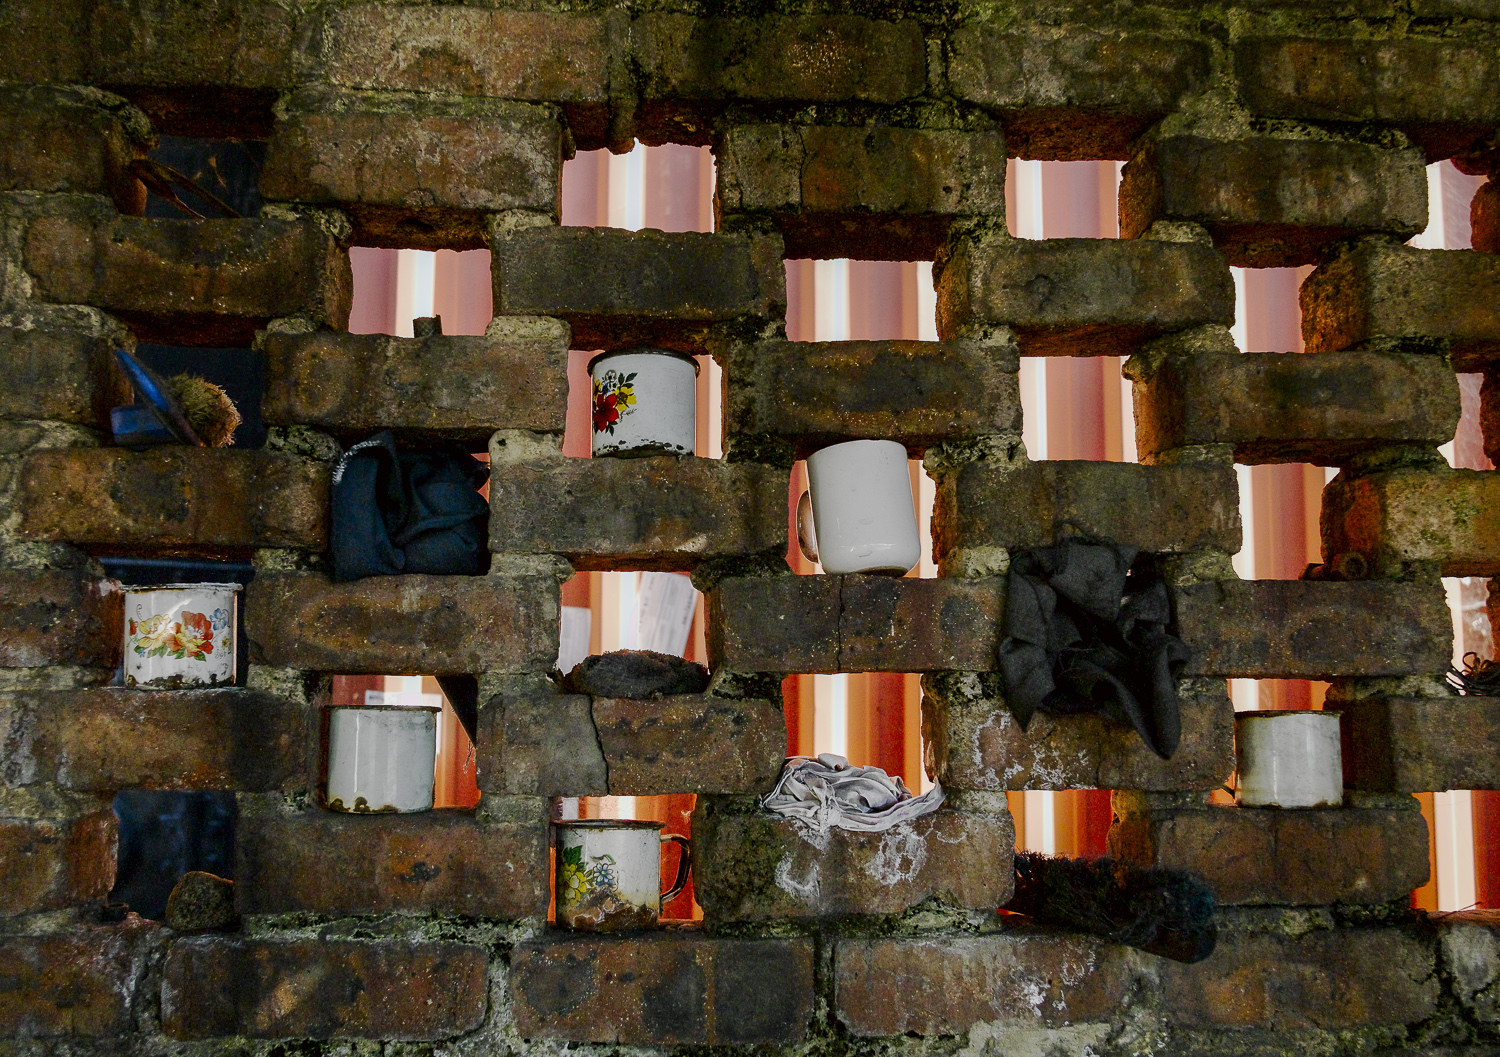 Enamel cups - Newcastle, South Africa, 2006